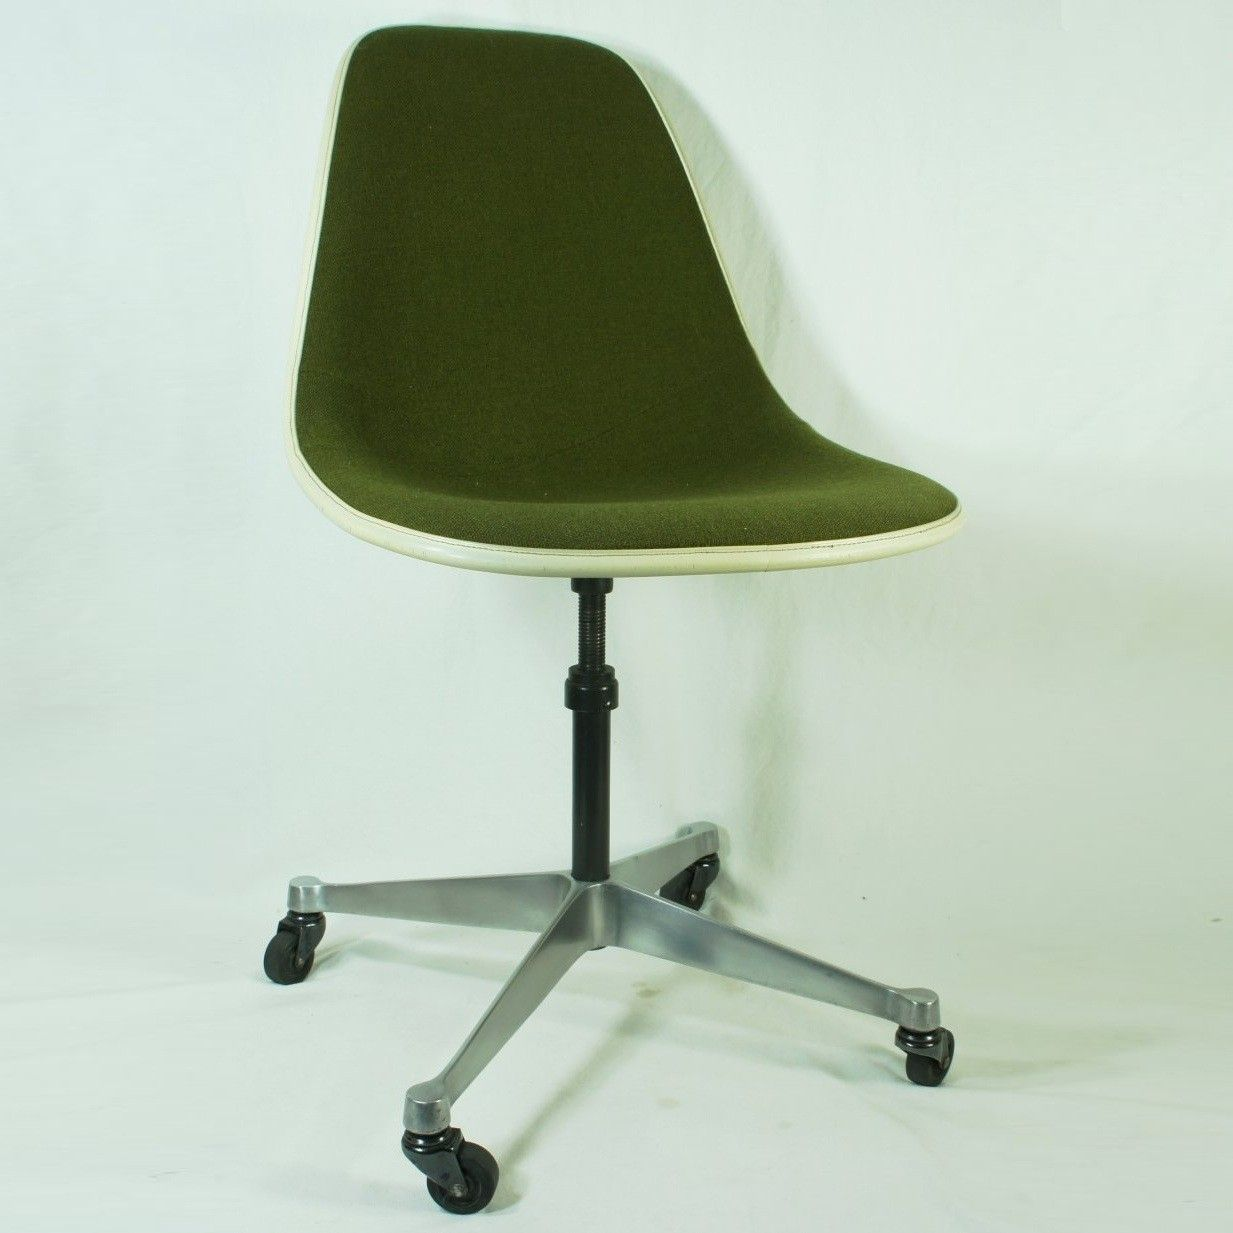 Eames Desk Chair Interior Pinterest Desks Bureaus And Mid - Lobster-and-shelly-lounge-chairs-by-oluf-lund-and-eva-paarmann